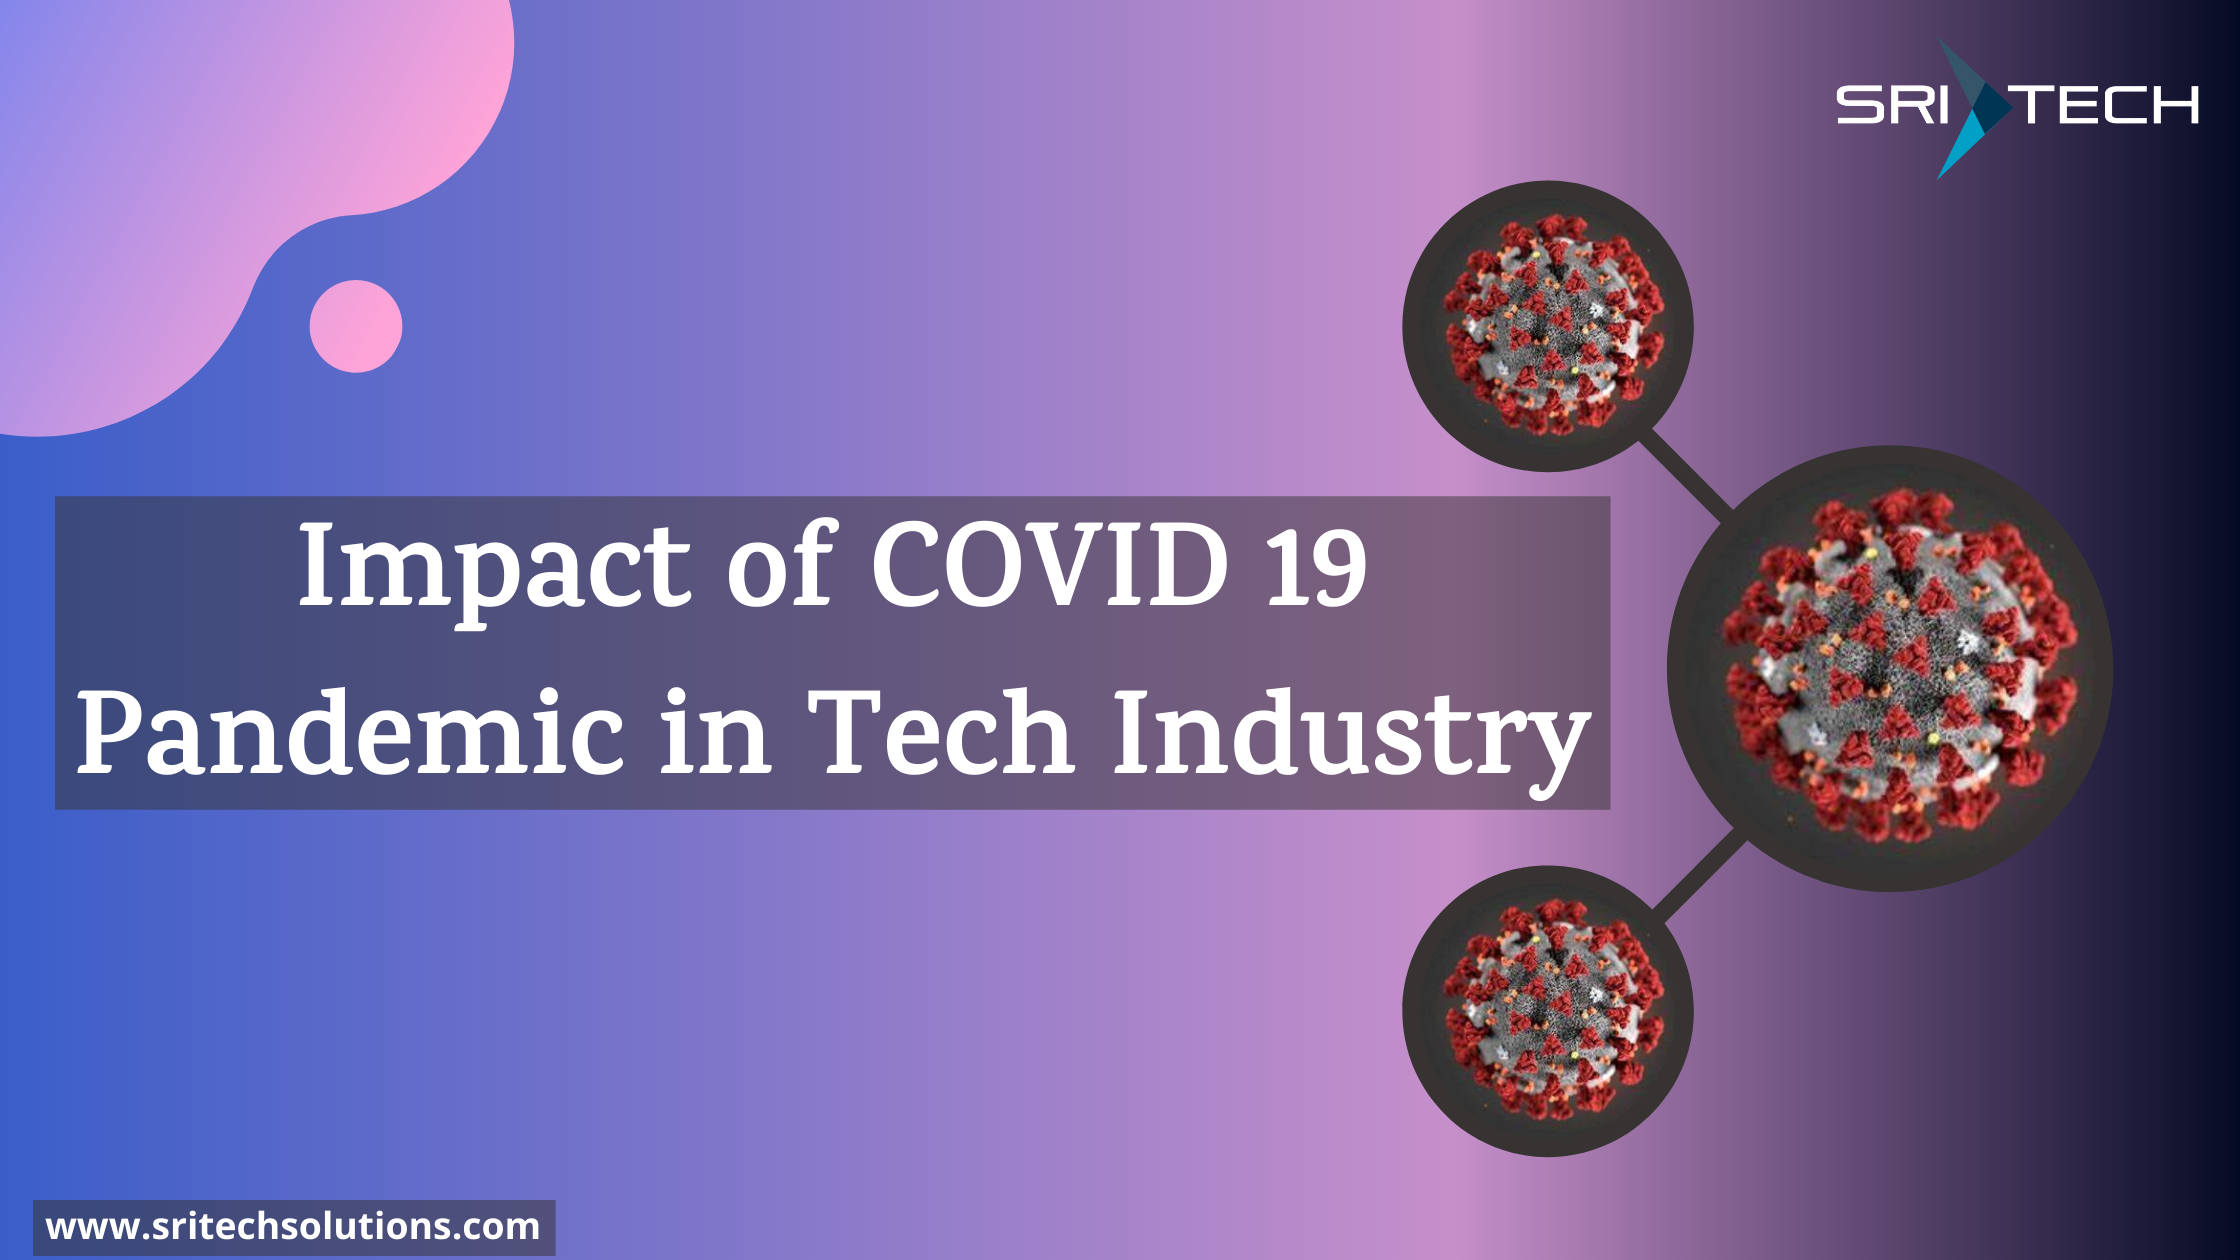 Impact of COVID 19 Pandemic in Tech Industry